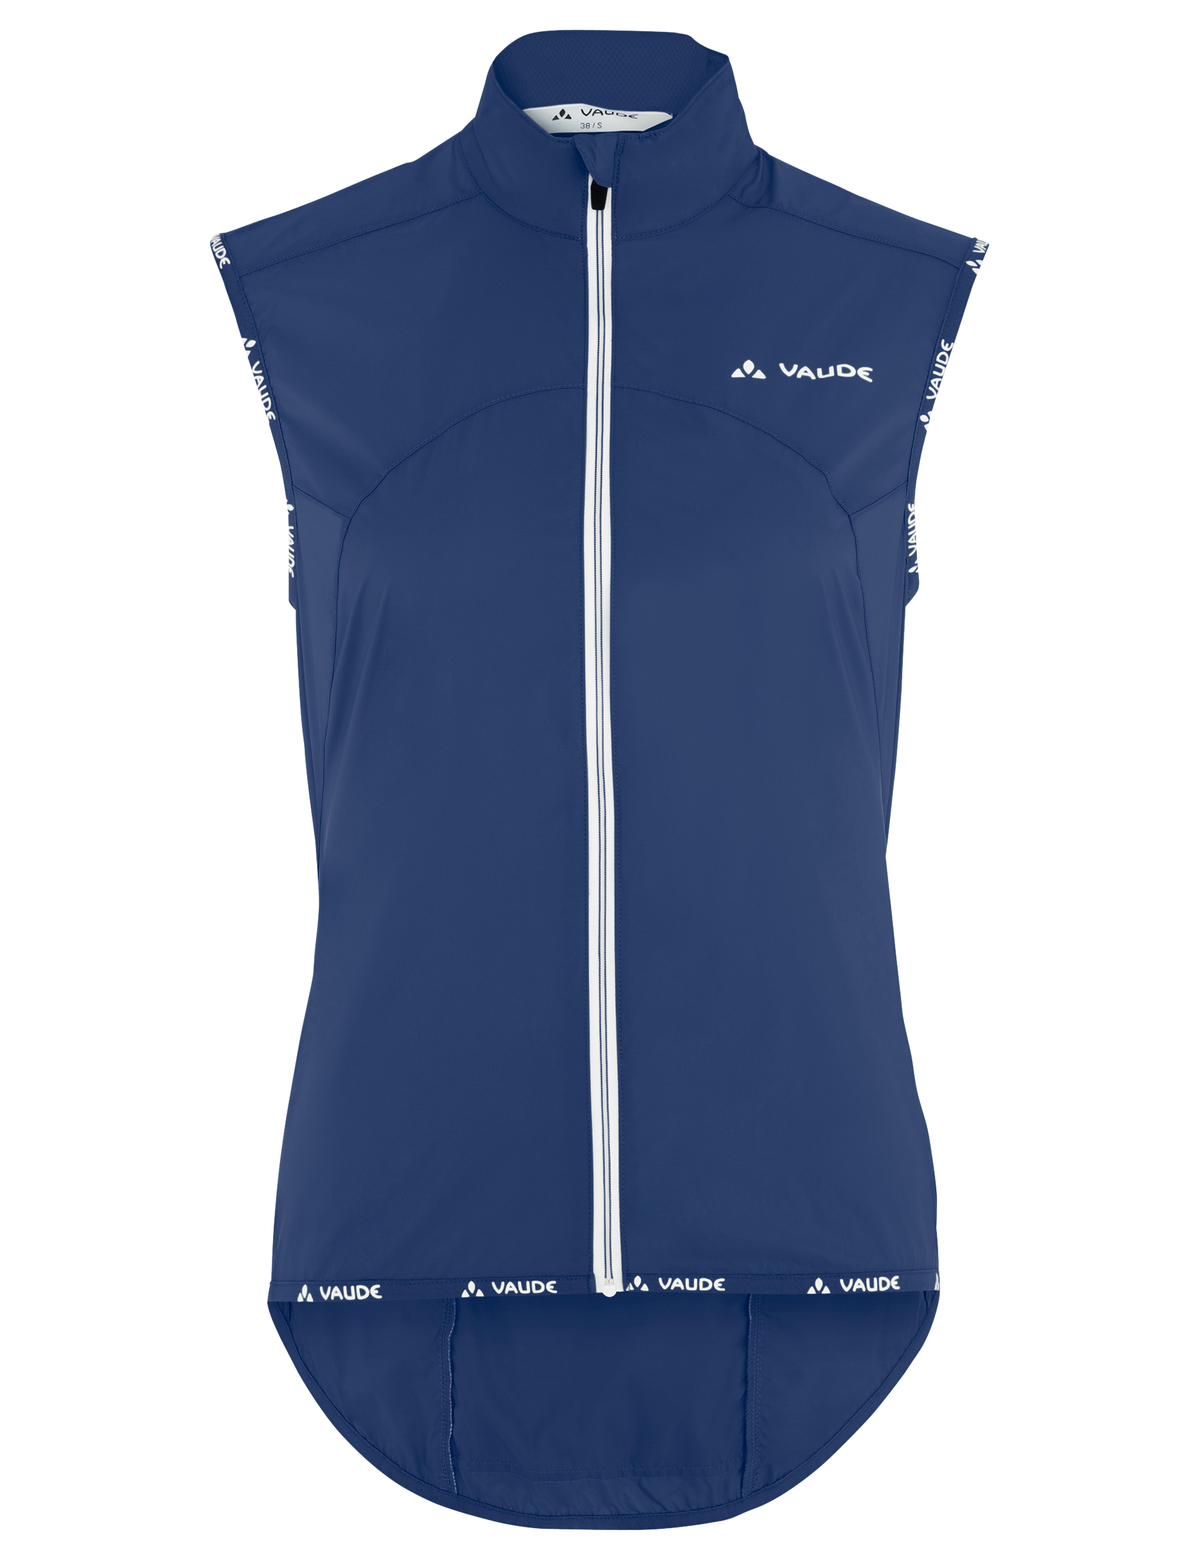 VAUDE Women´s Air Vest II sailor blue Größe 40 - 2-Rad-Sport Wehrle